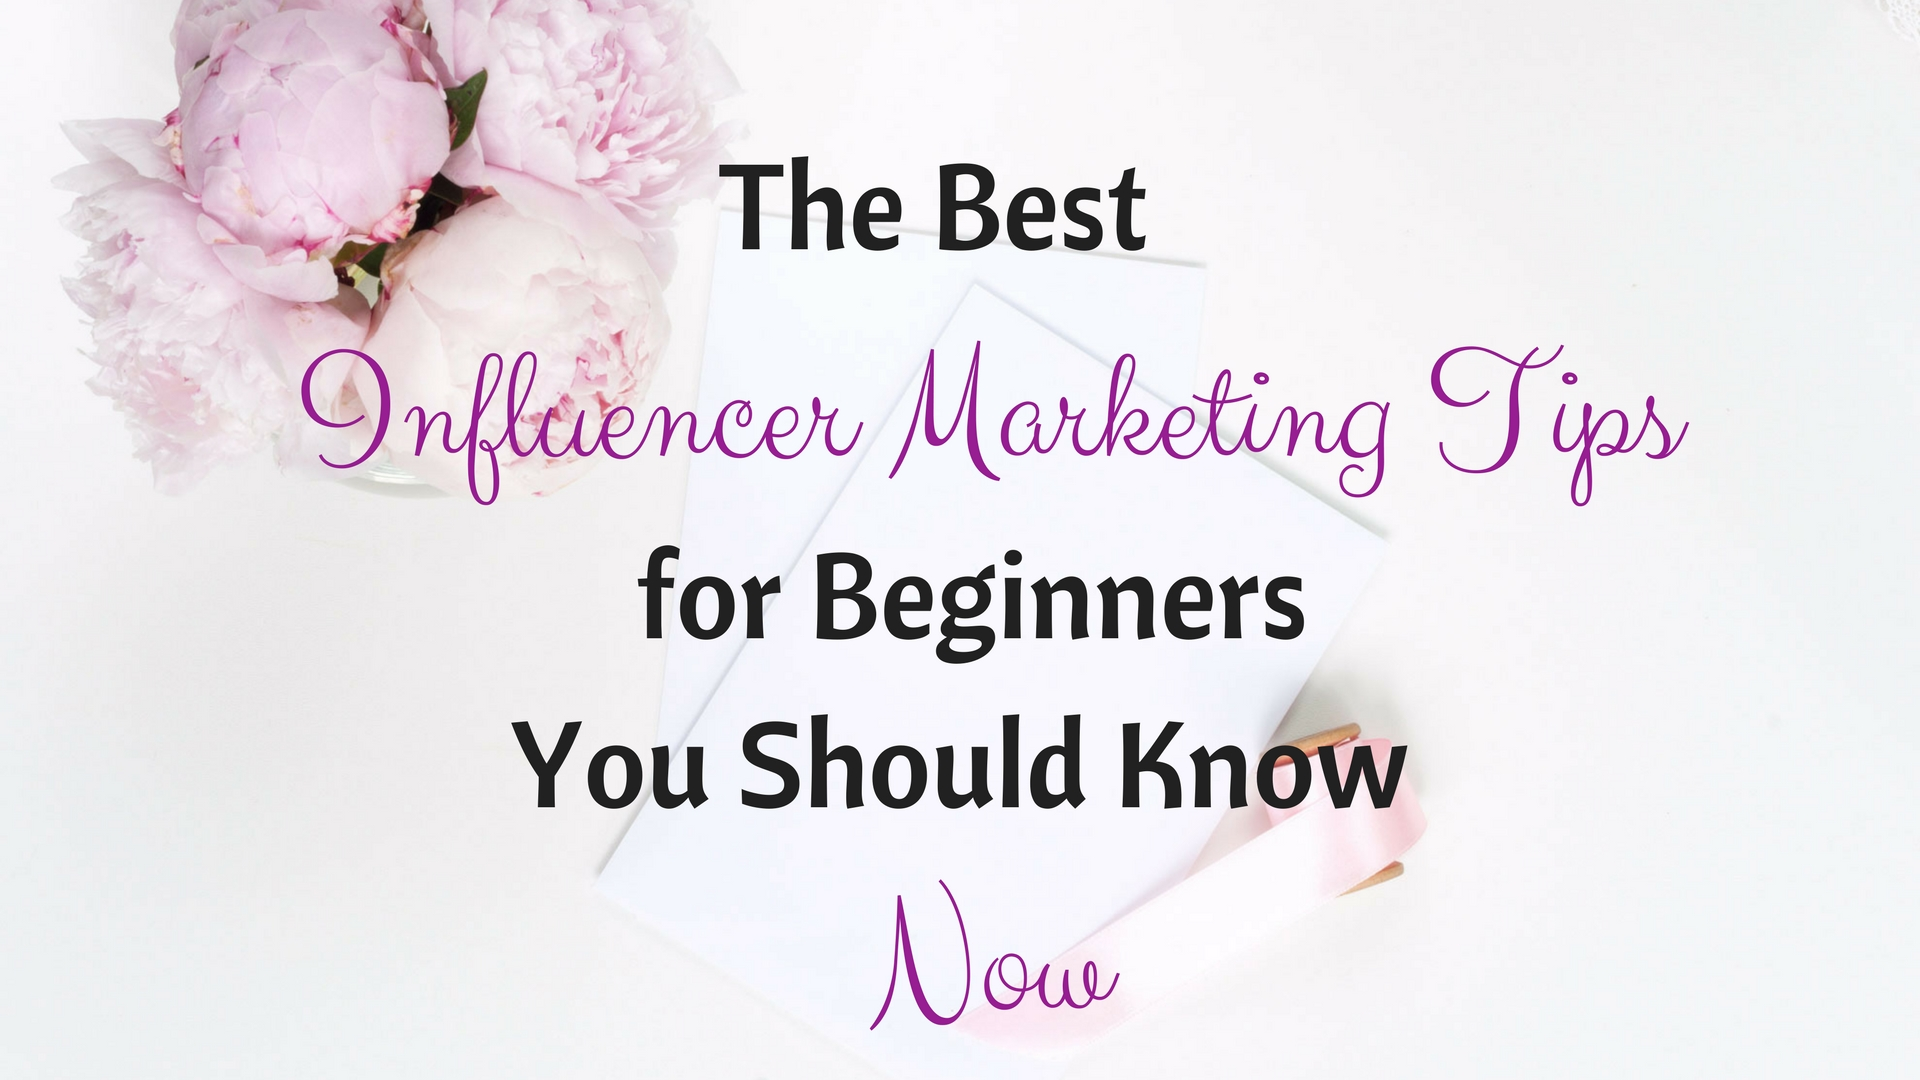 The Best Influencer Marketing Tips